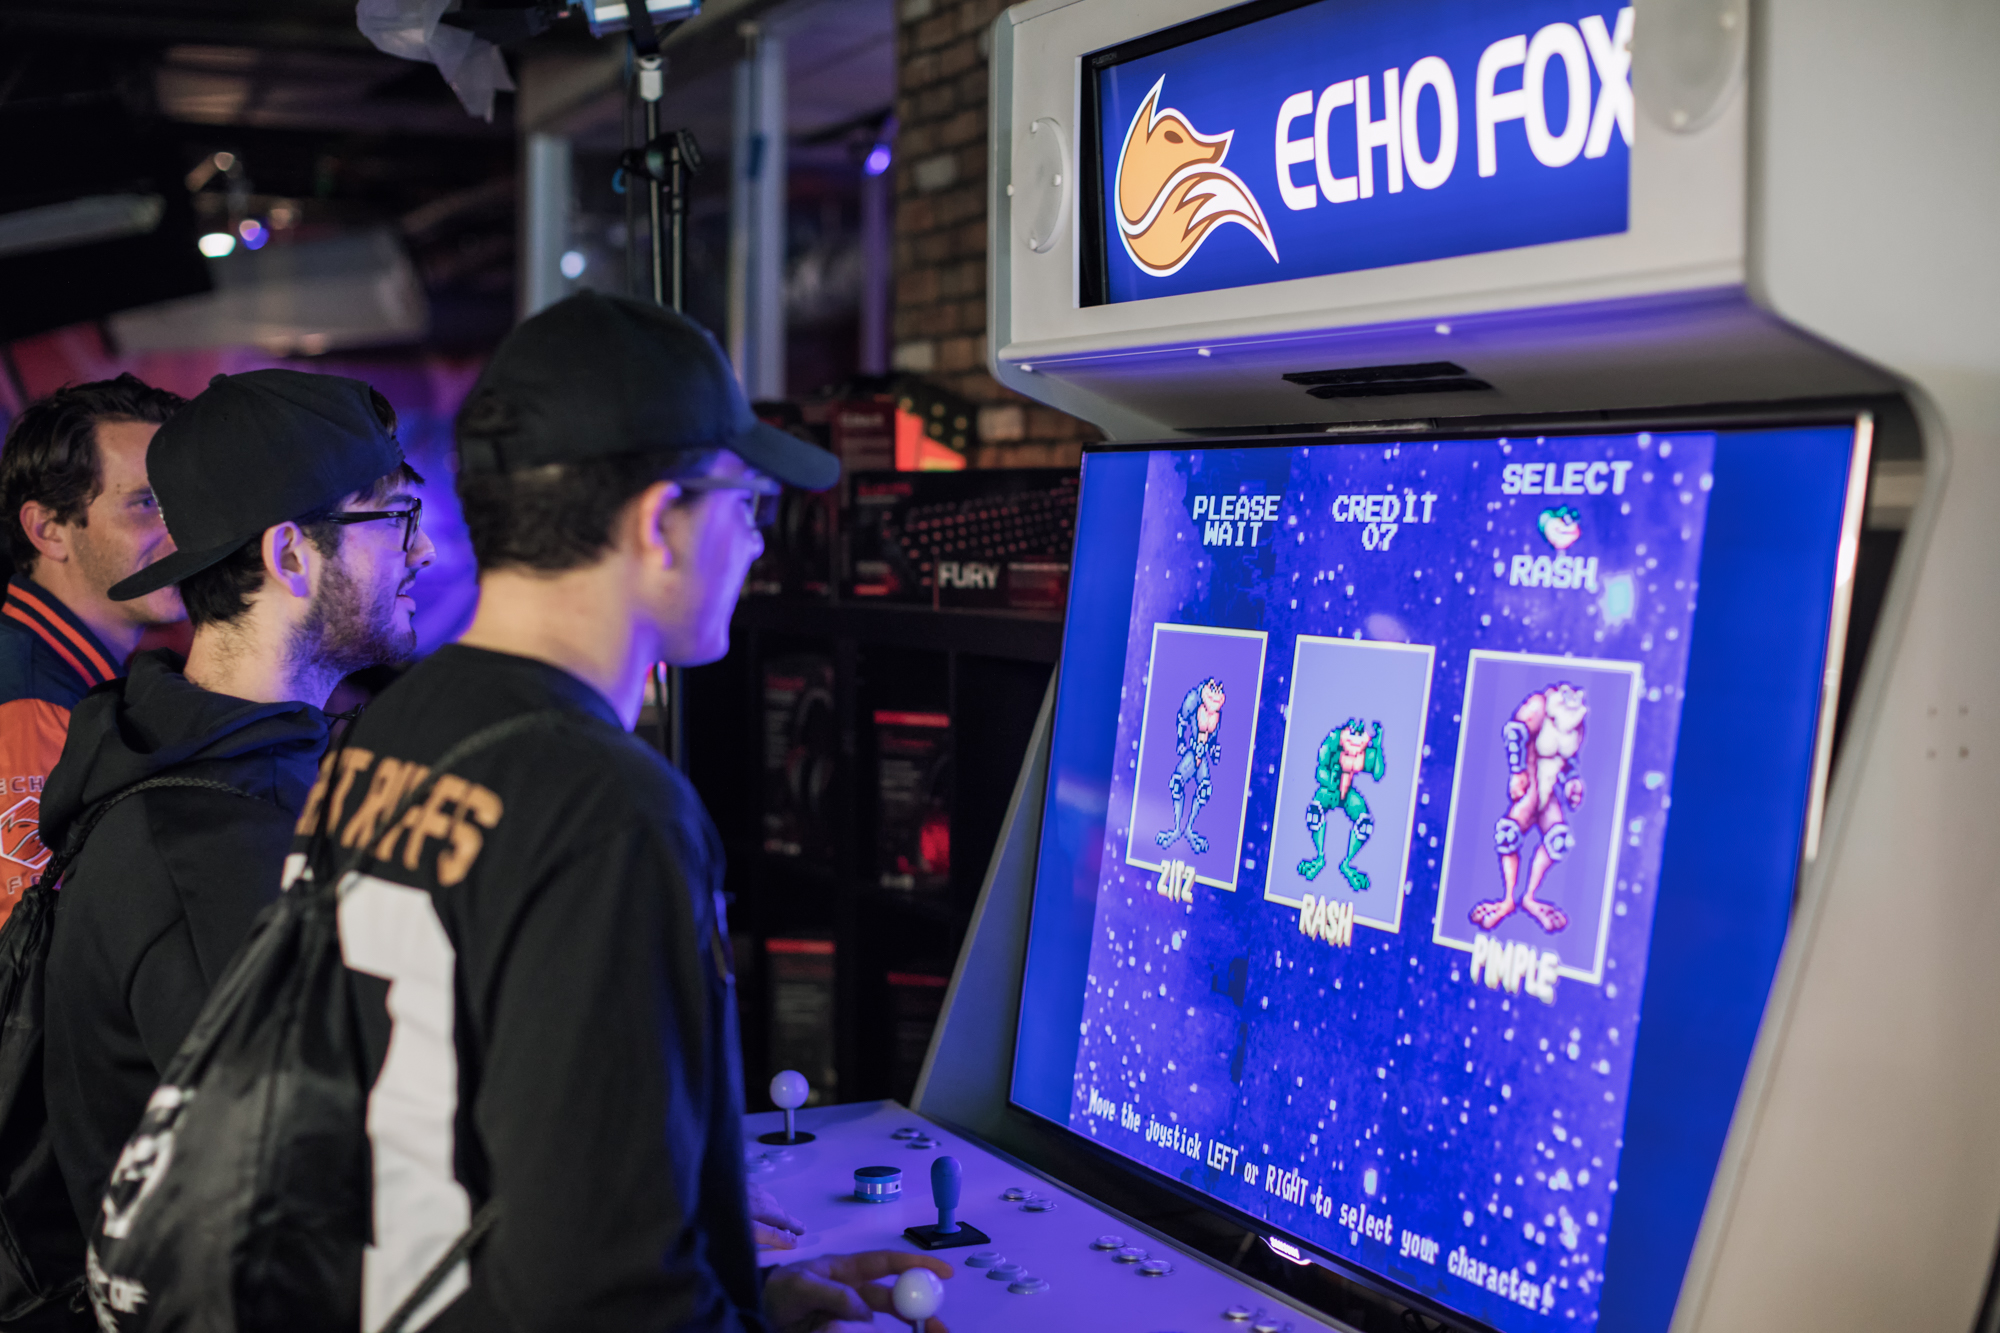 BEHIND THE SCENES WITH ECHO FOX   FEB 09, 2018